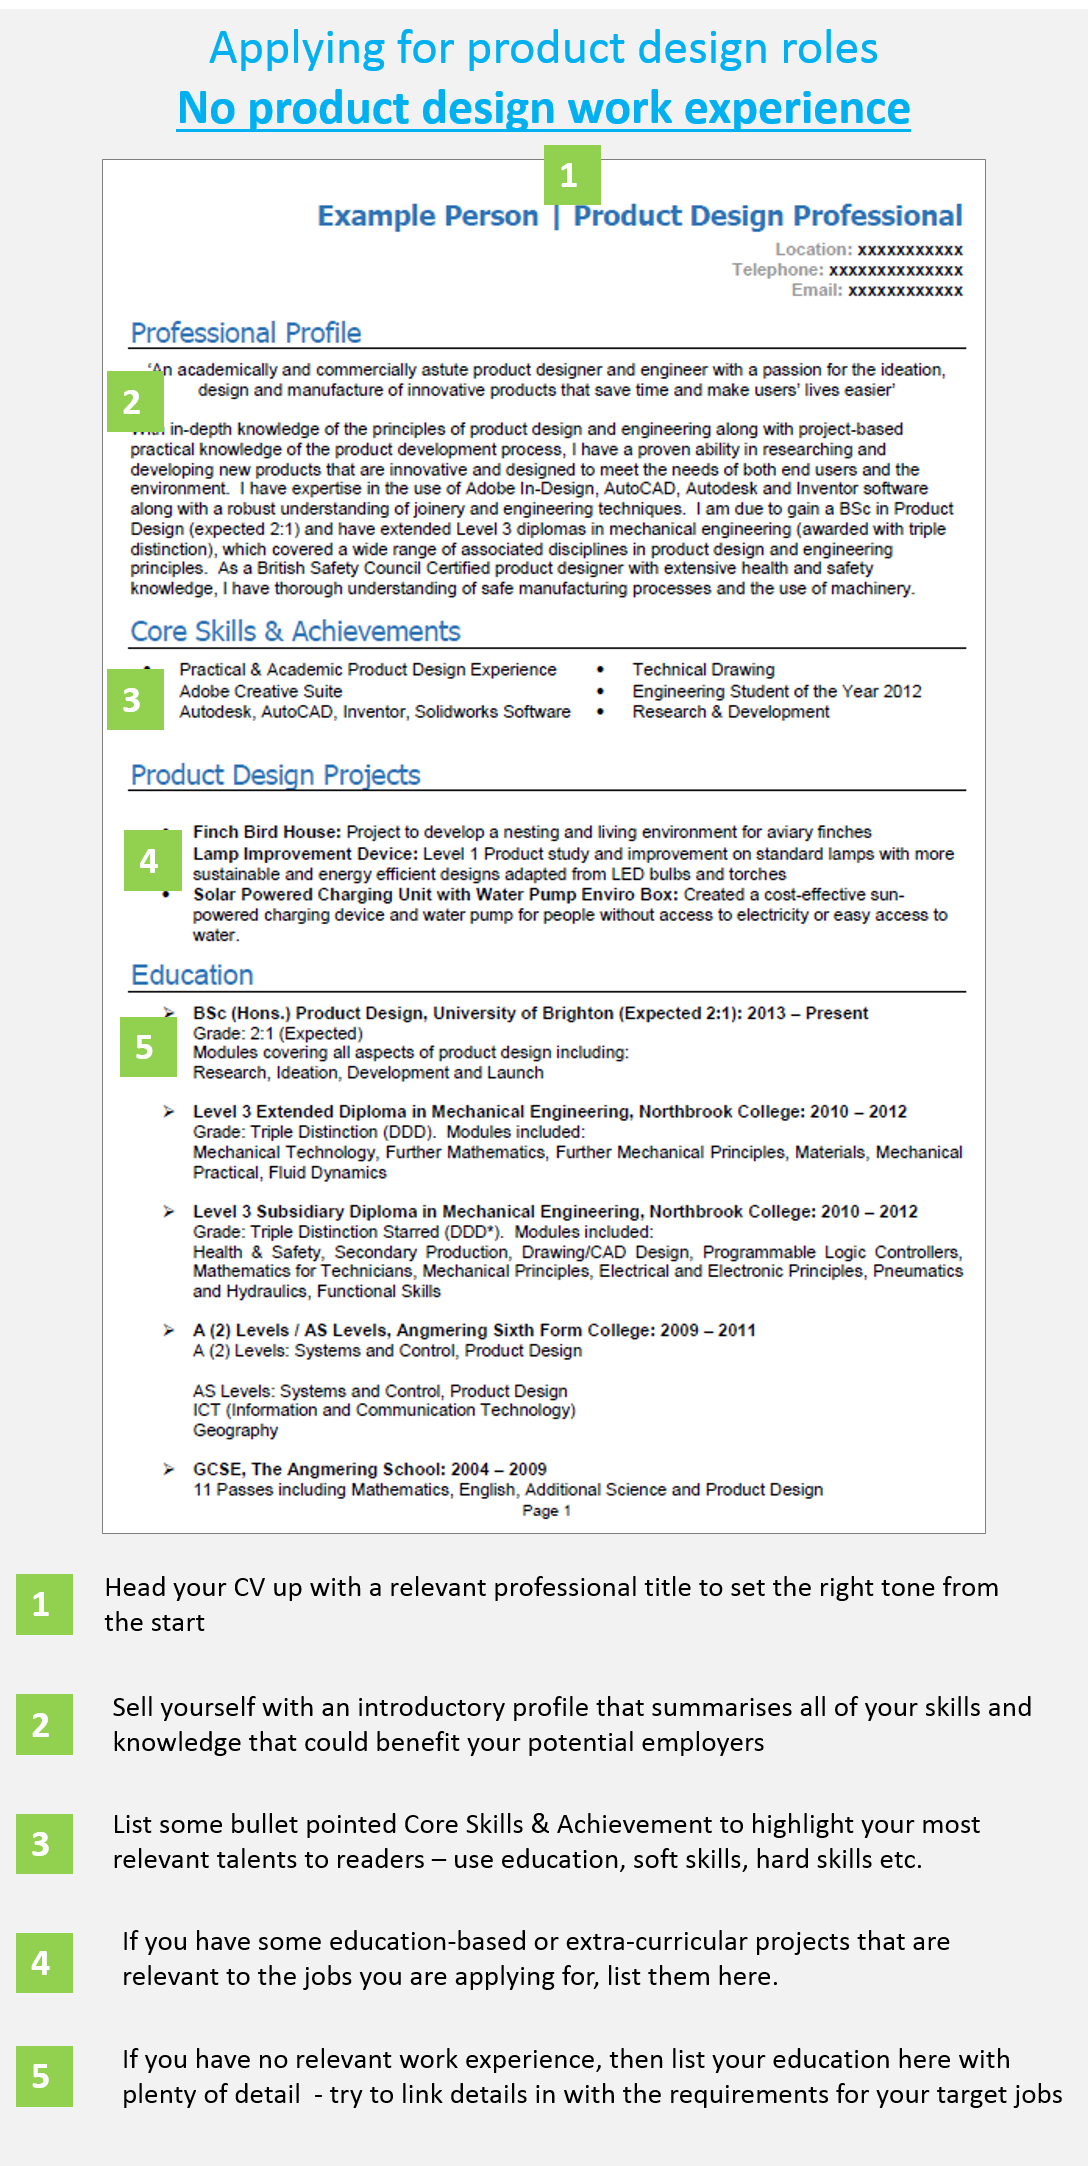 School leaver example CV 1